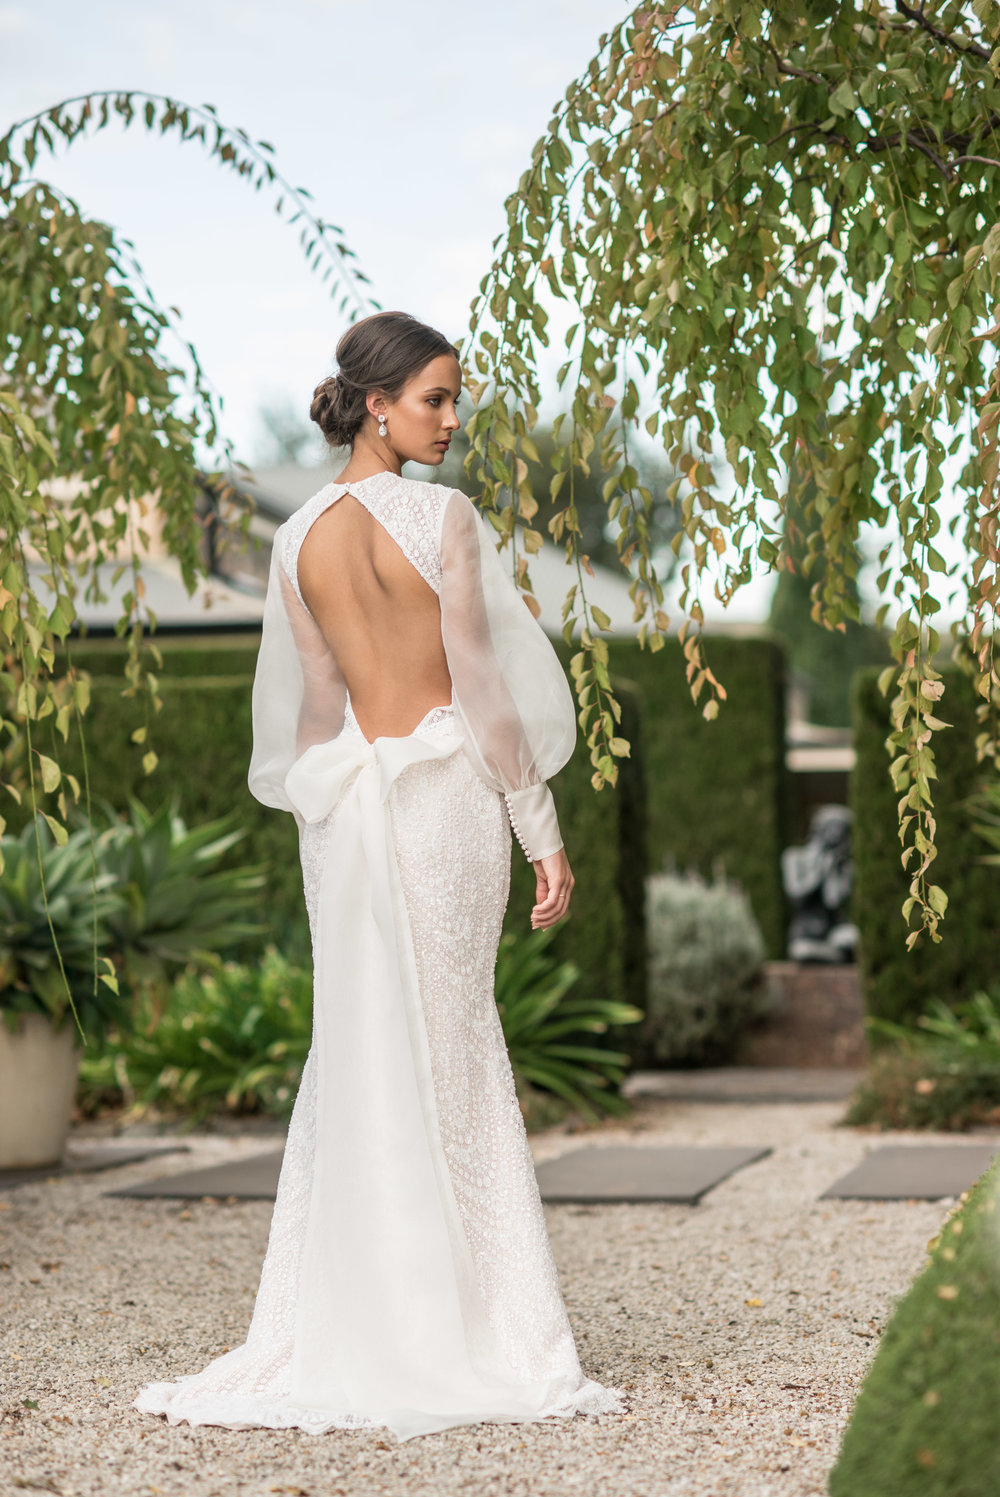 Fashion with Mirella , Bridal , Wedding dress, on location Mandalay House and Garden.  271 Back Callington Rd, St Ives SA 5252  Photo: Nick Clayton